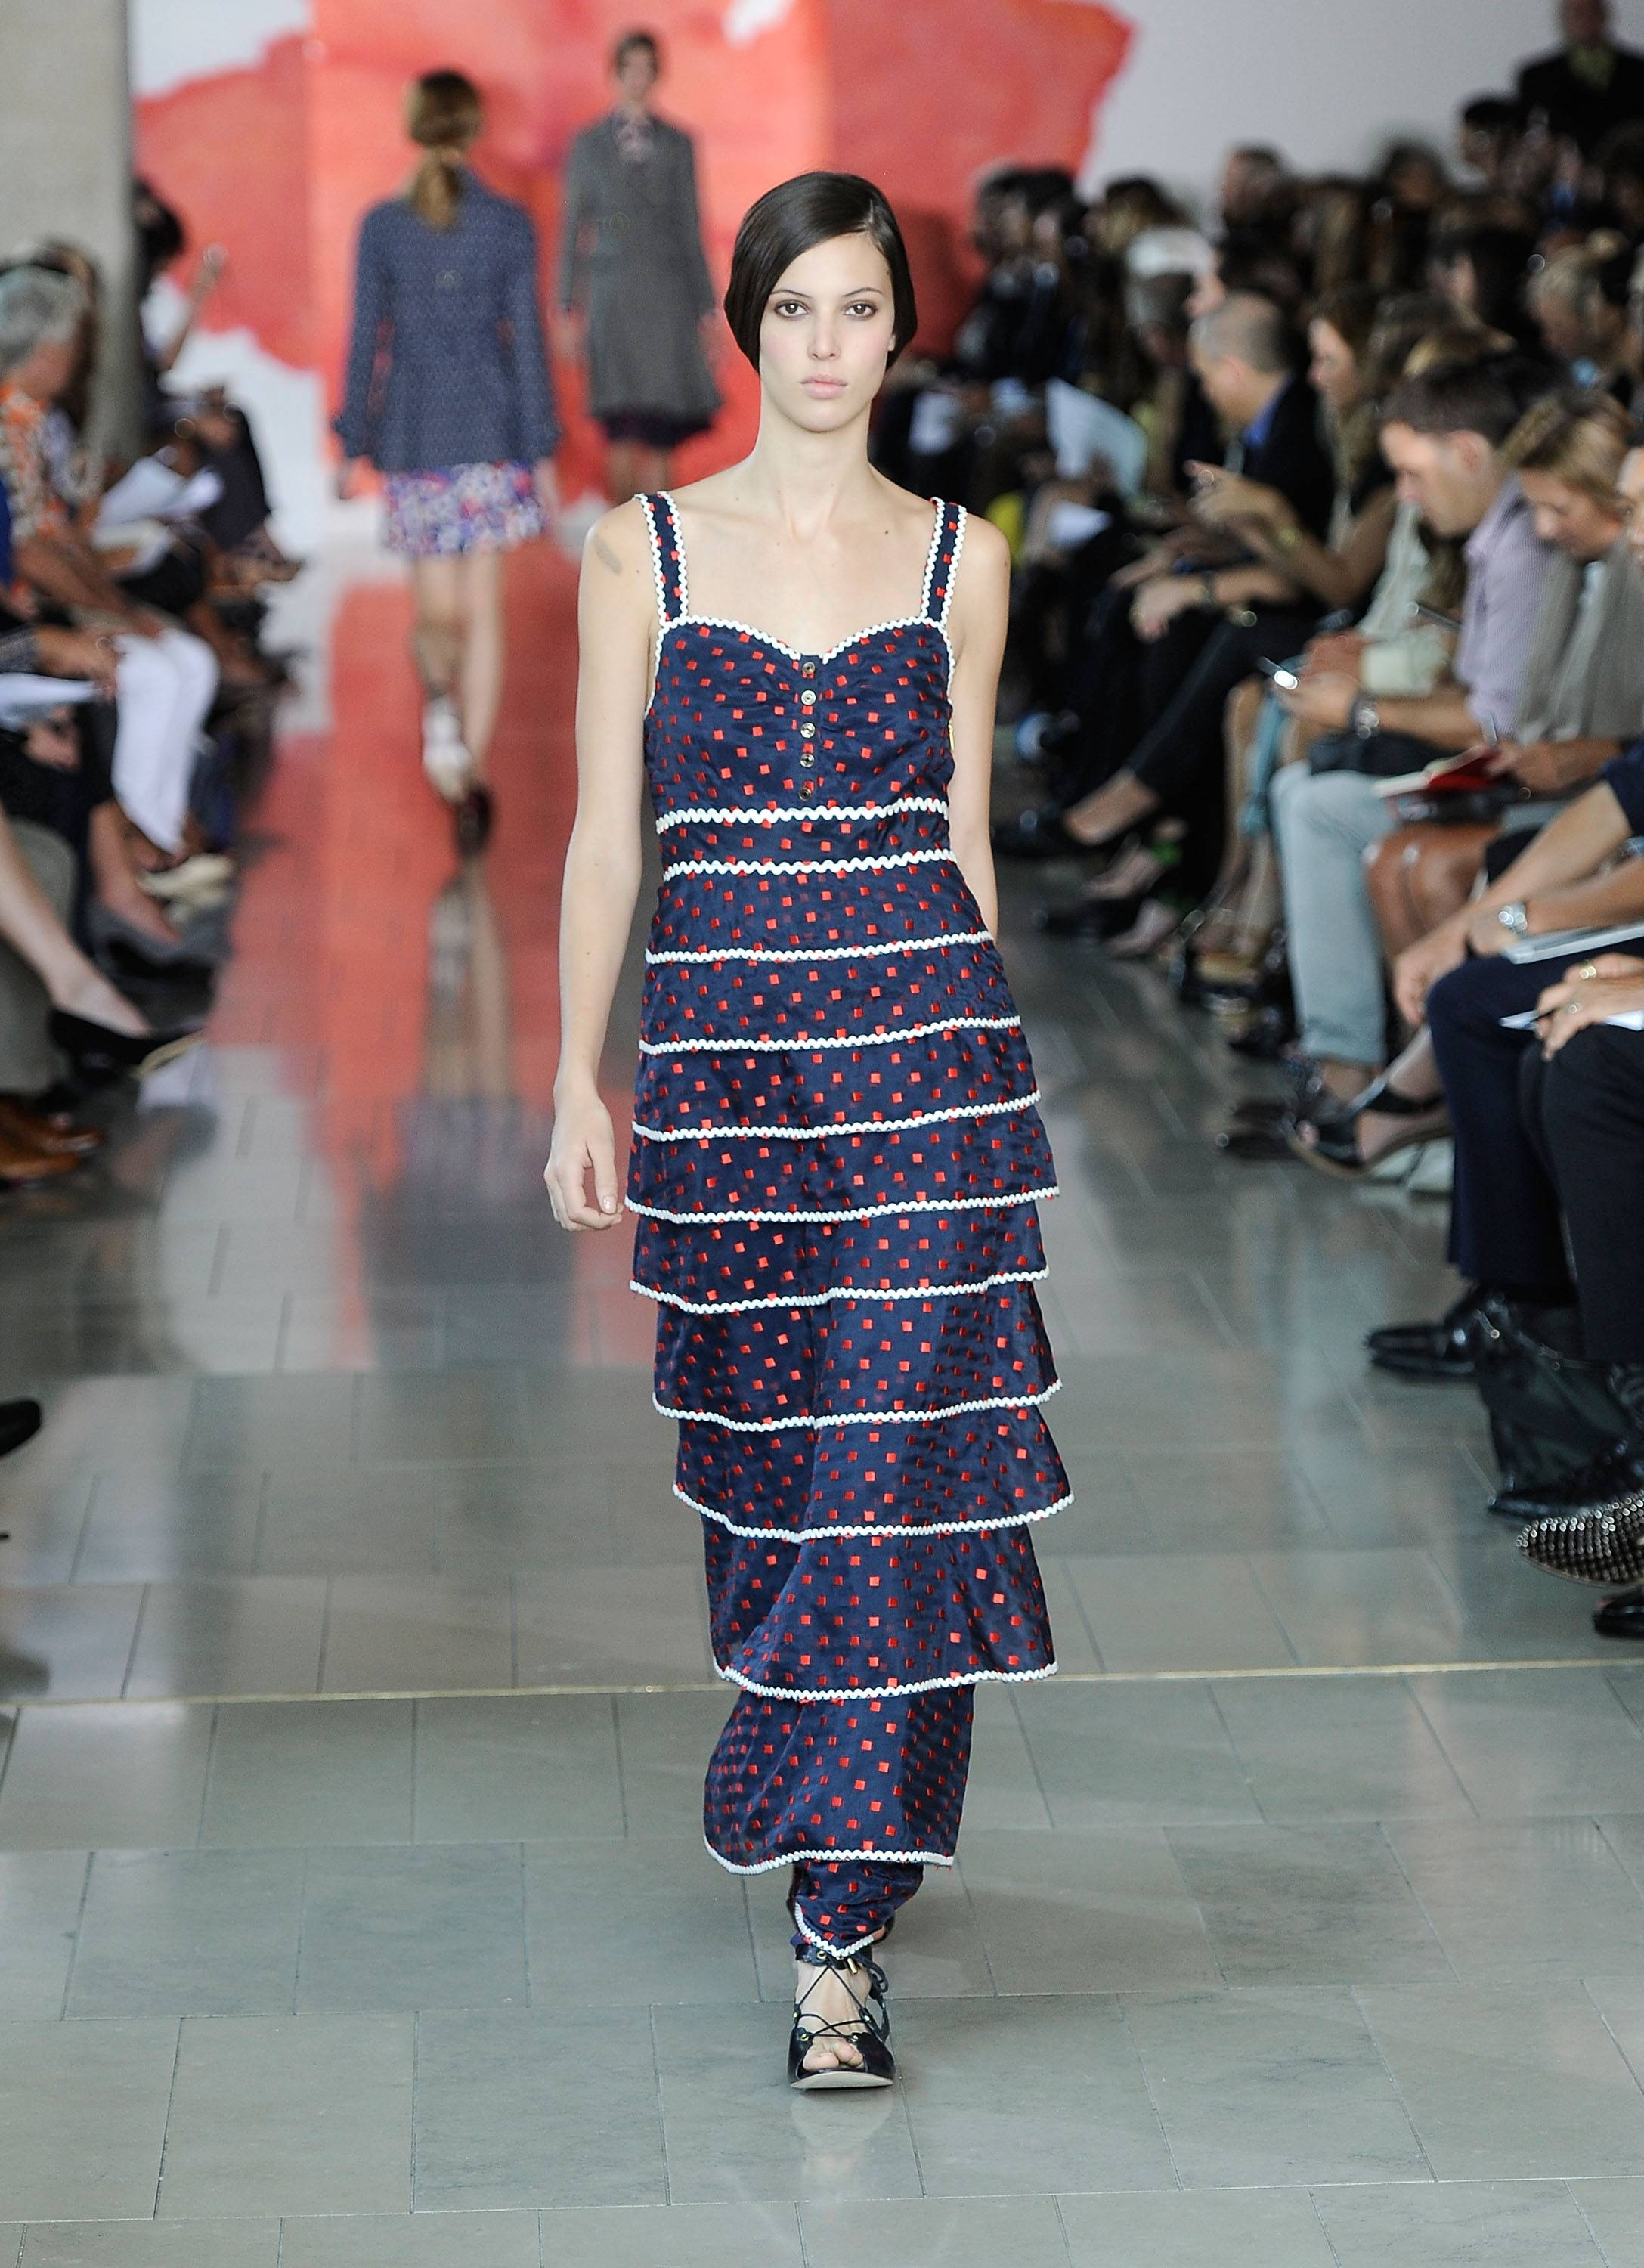 Tory Burch Runway Presentation 10, Mercedes Benz Fashion Week, s/s 2012